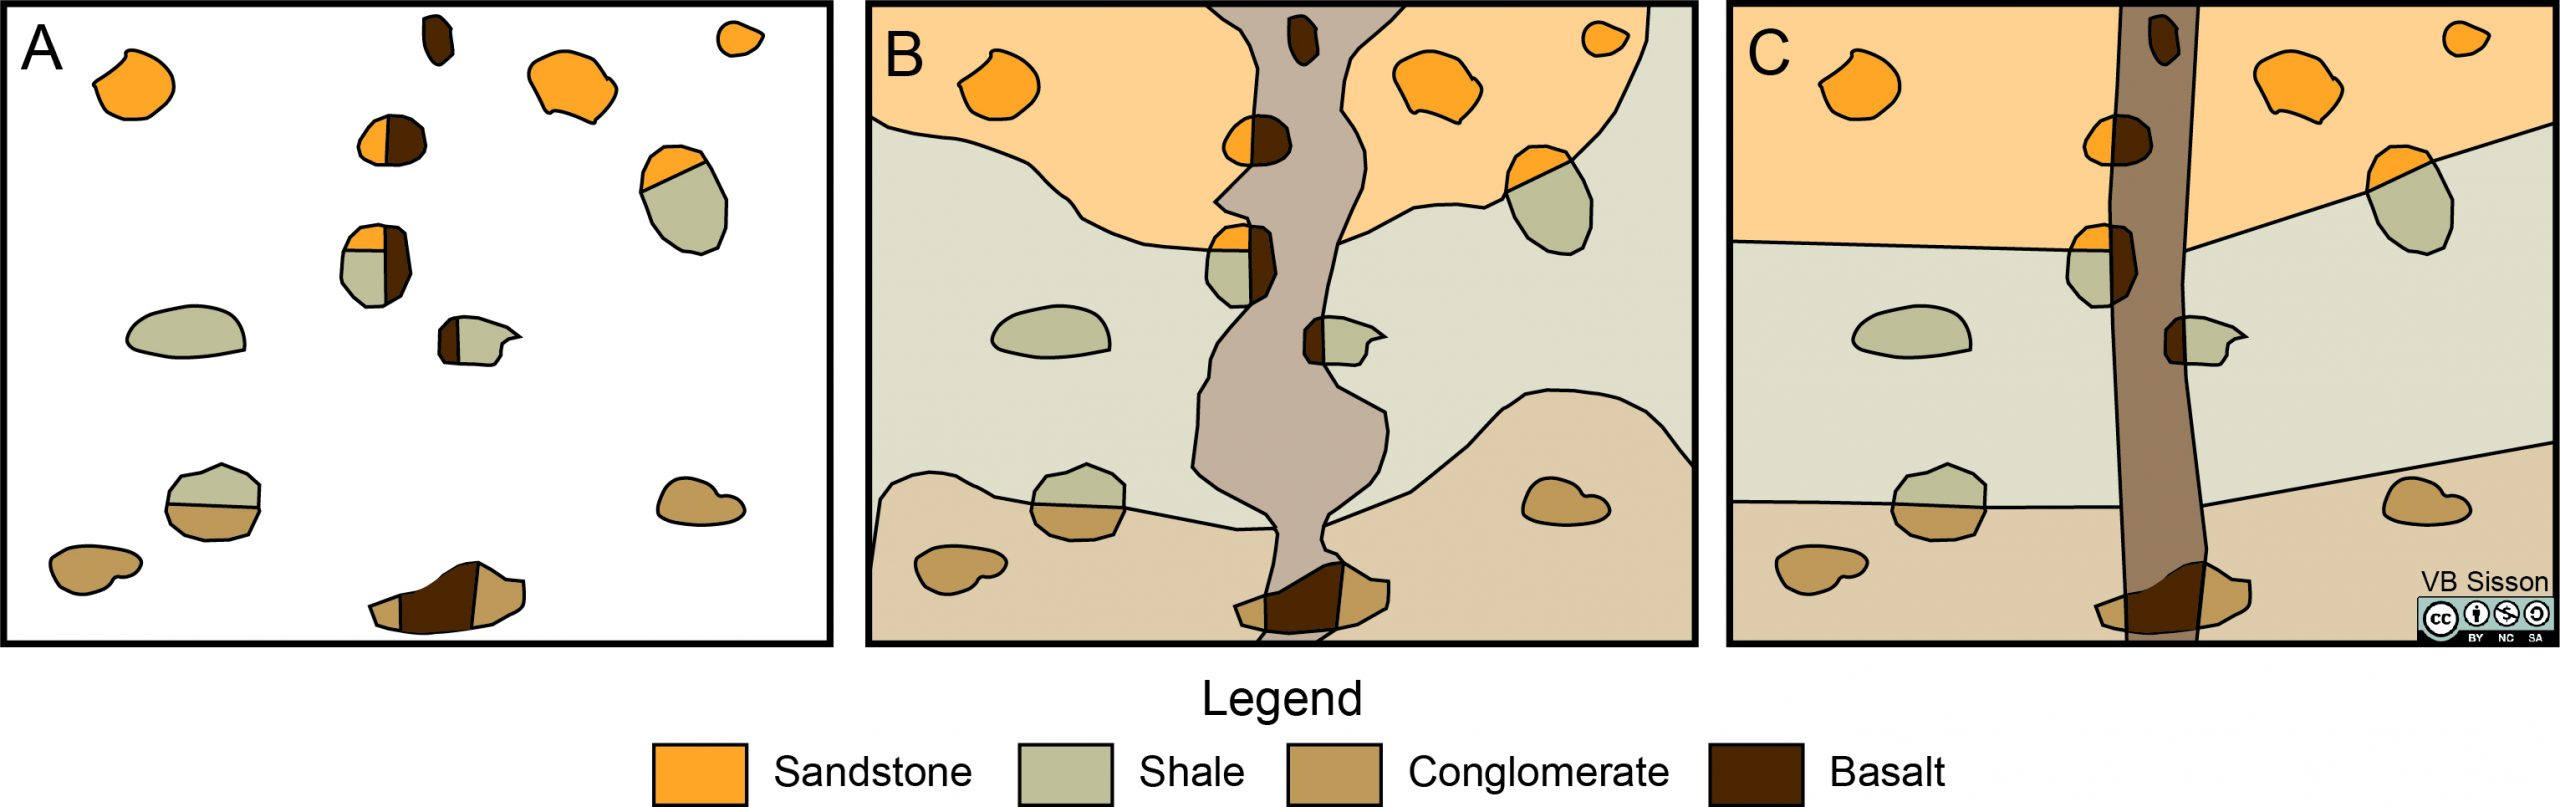 An outcrop map and two possible interpretations of this data